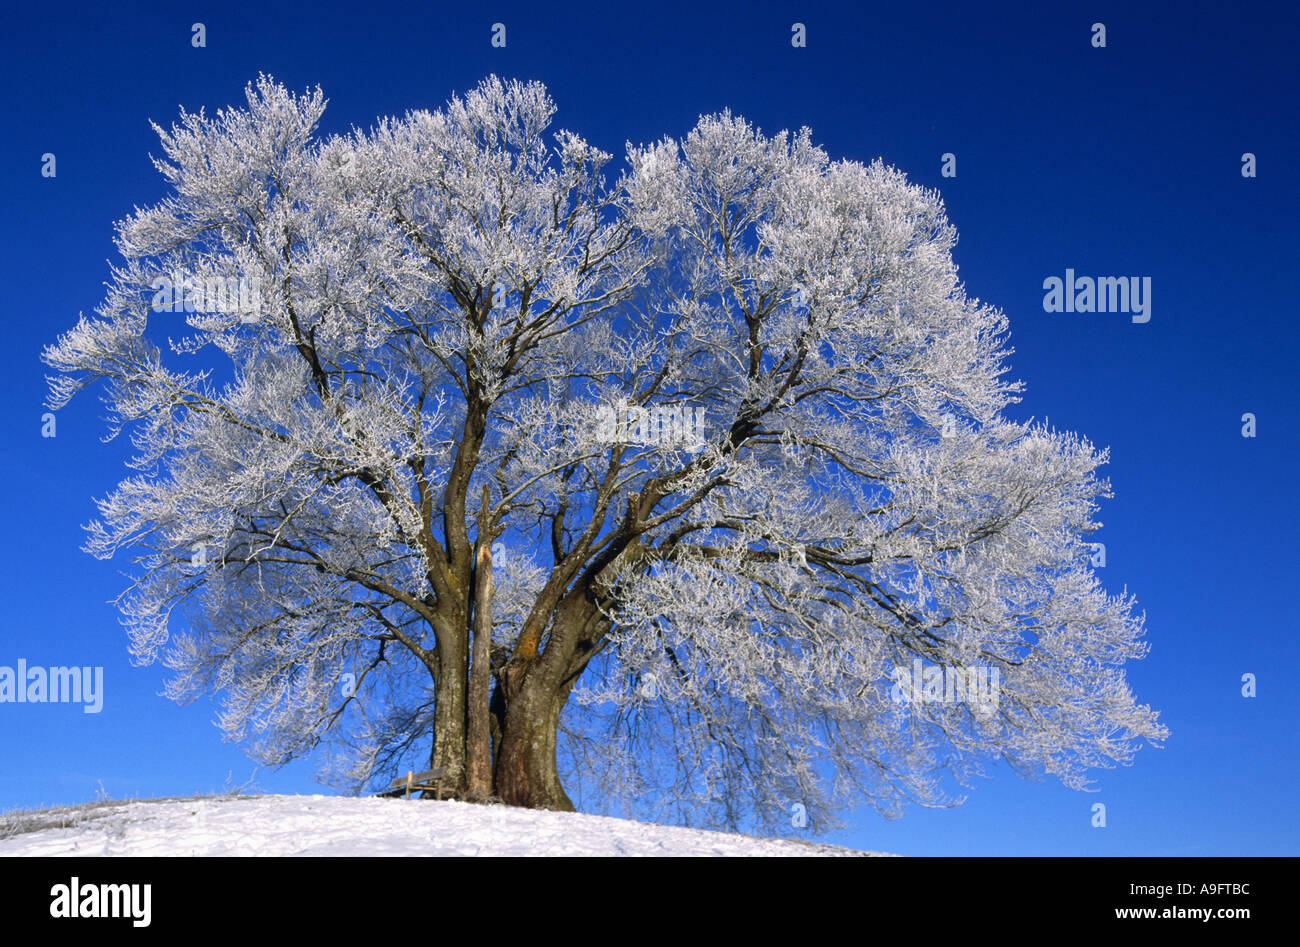 common beech (Fagus sylvatica), on a hilltop, covered with whitefrost, Germany, Bavaria. Stock Photo